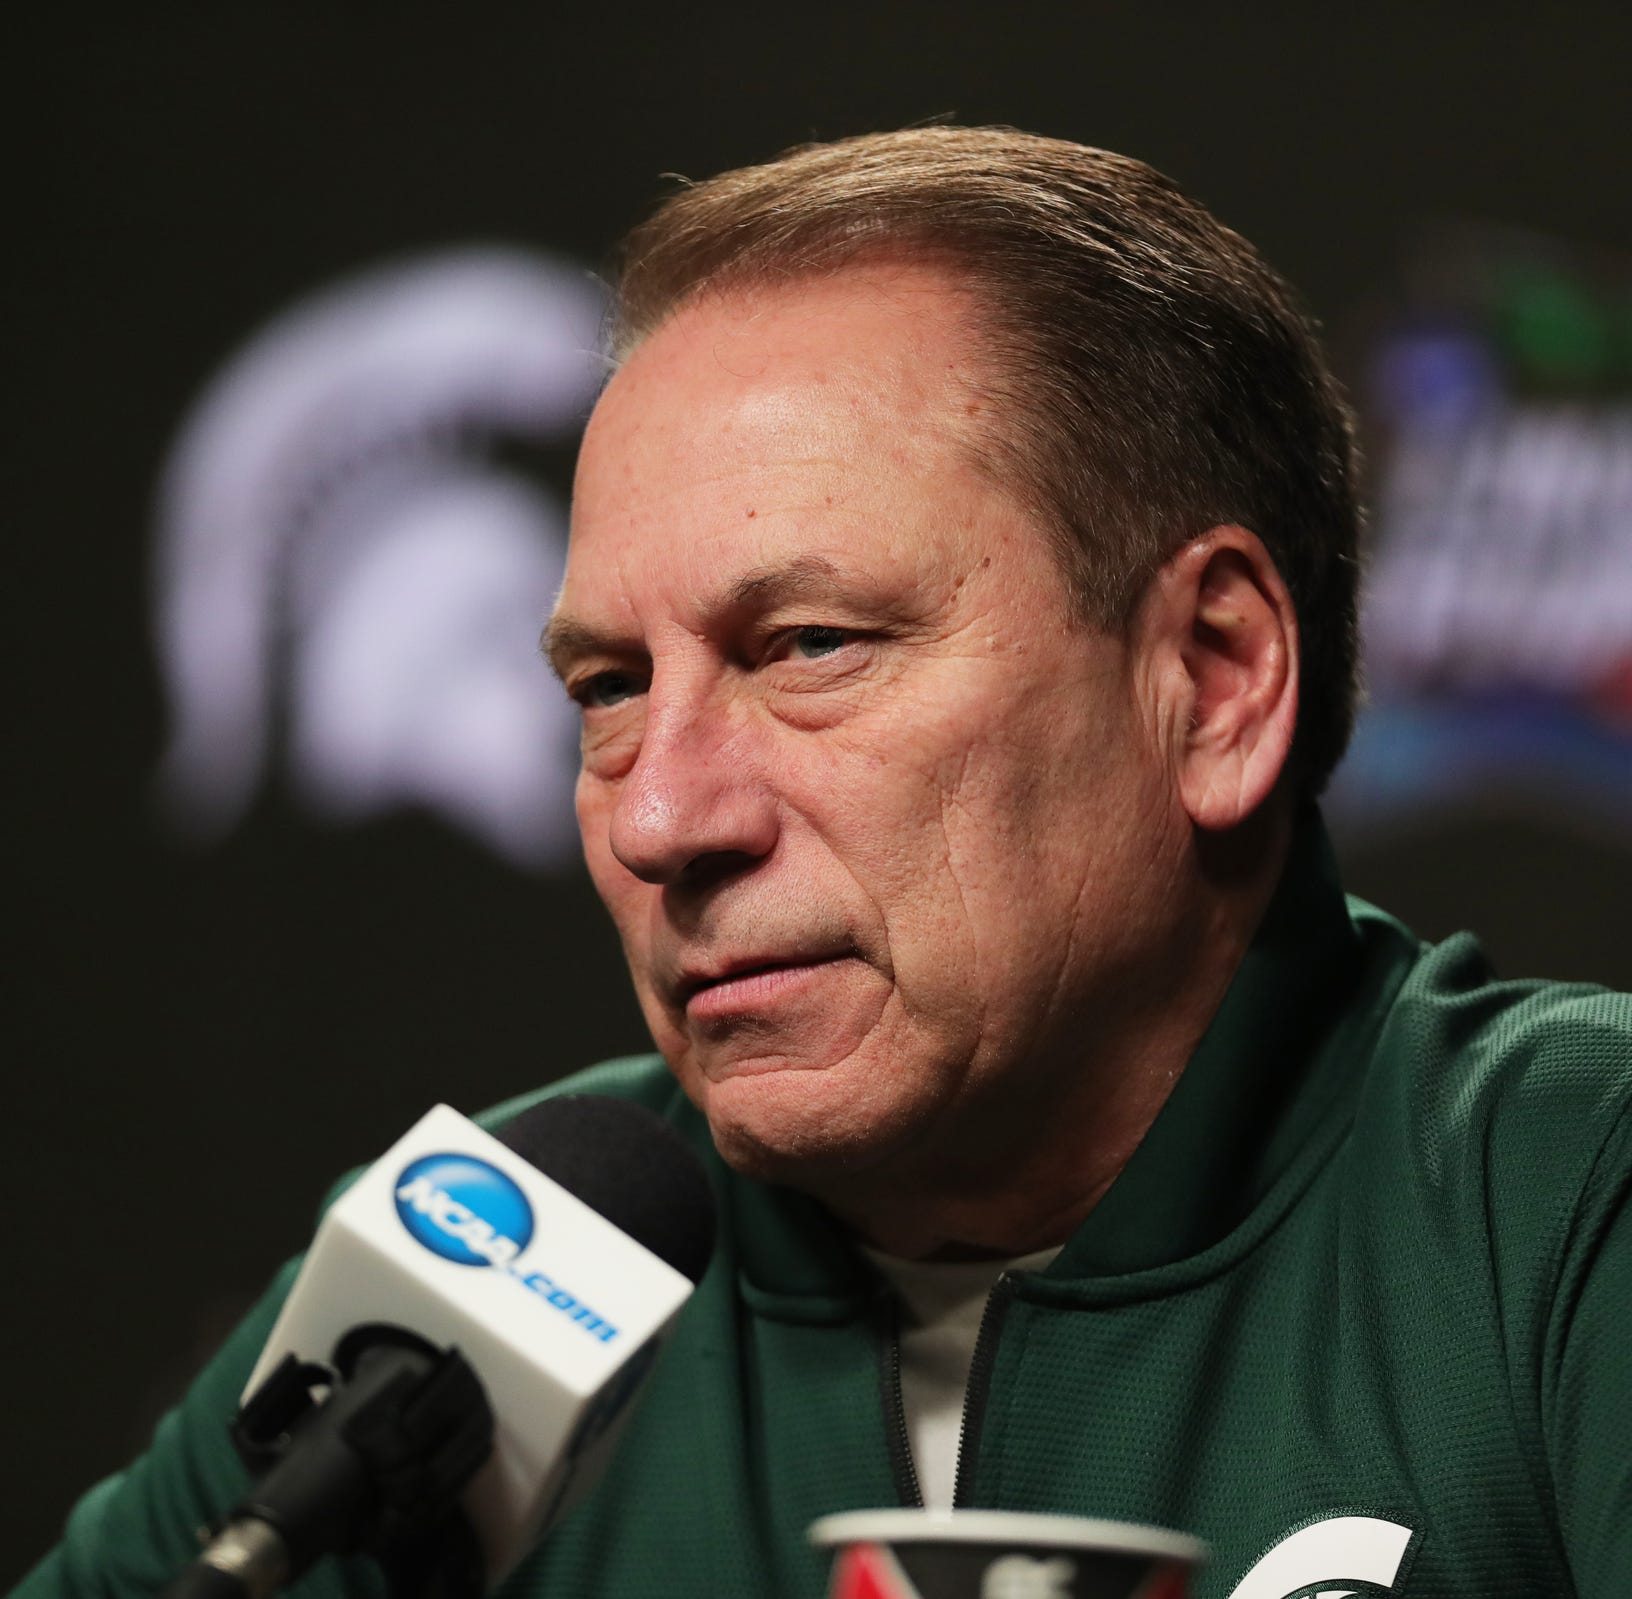 It's Final Four No. 8 for Tom Izzo, and this one is different. Here's why